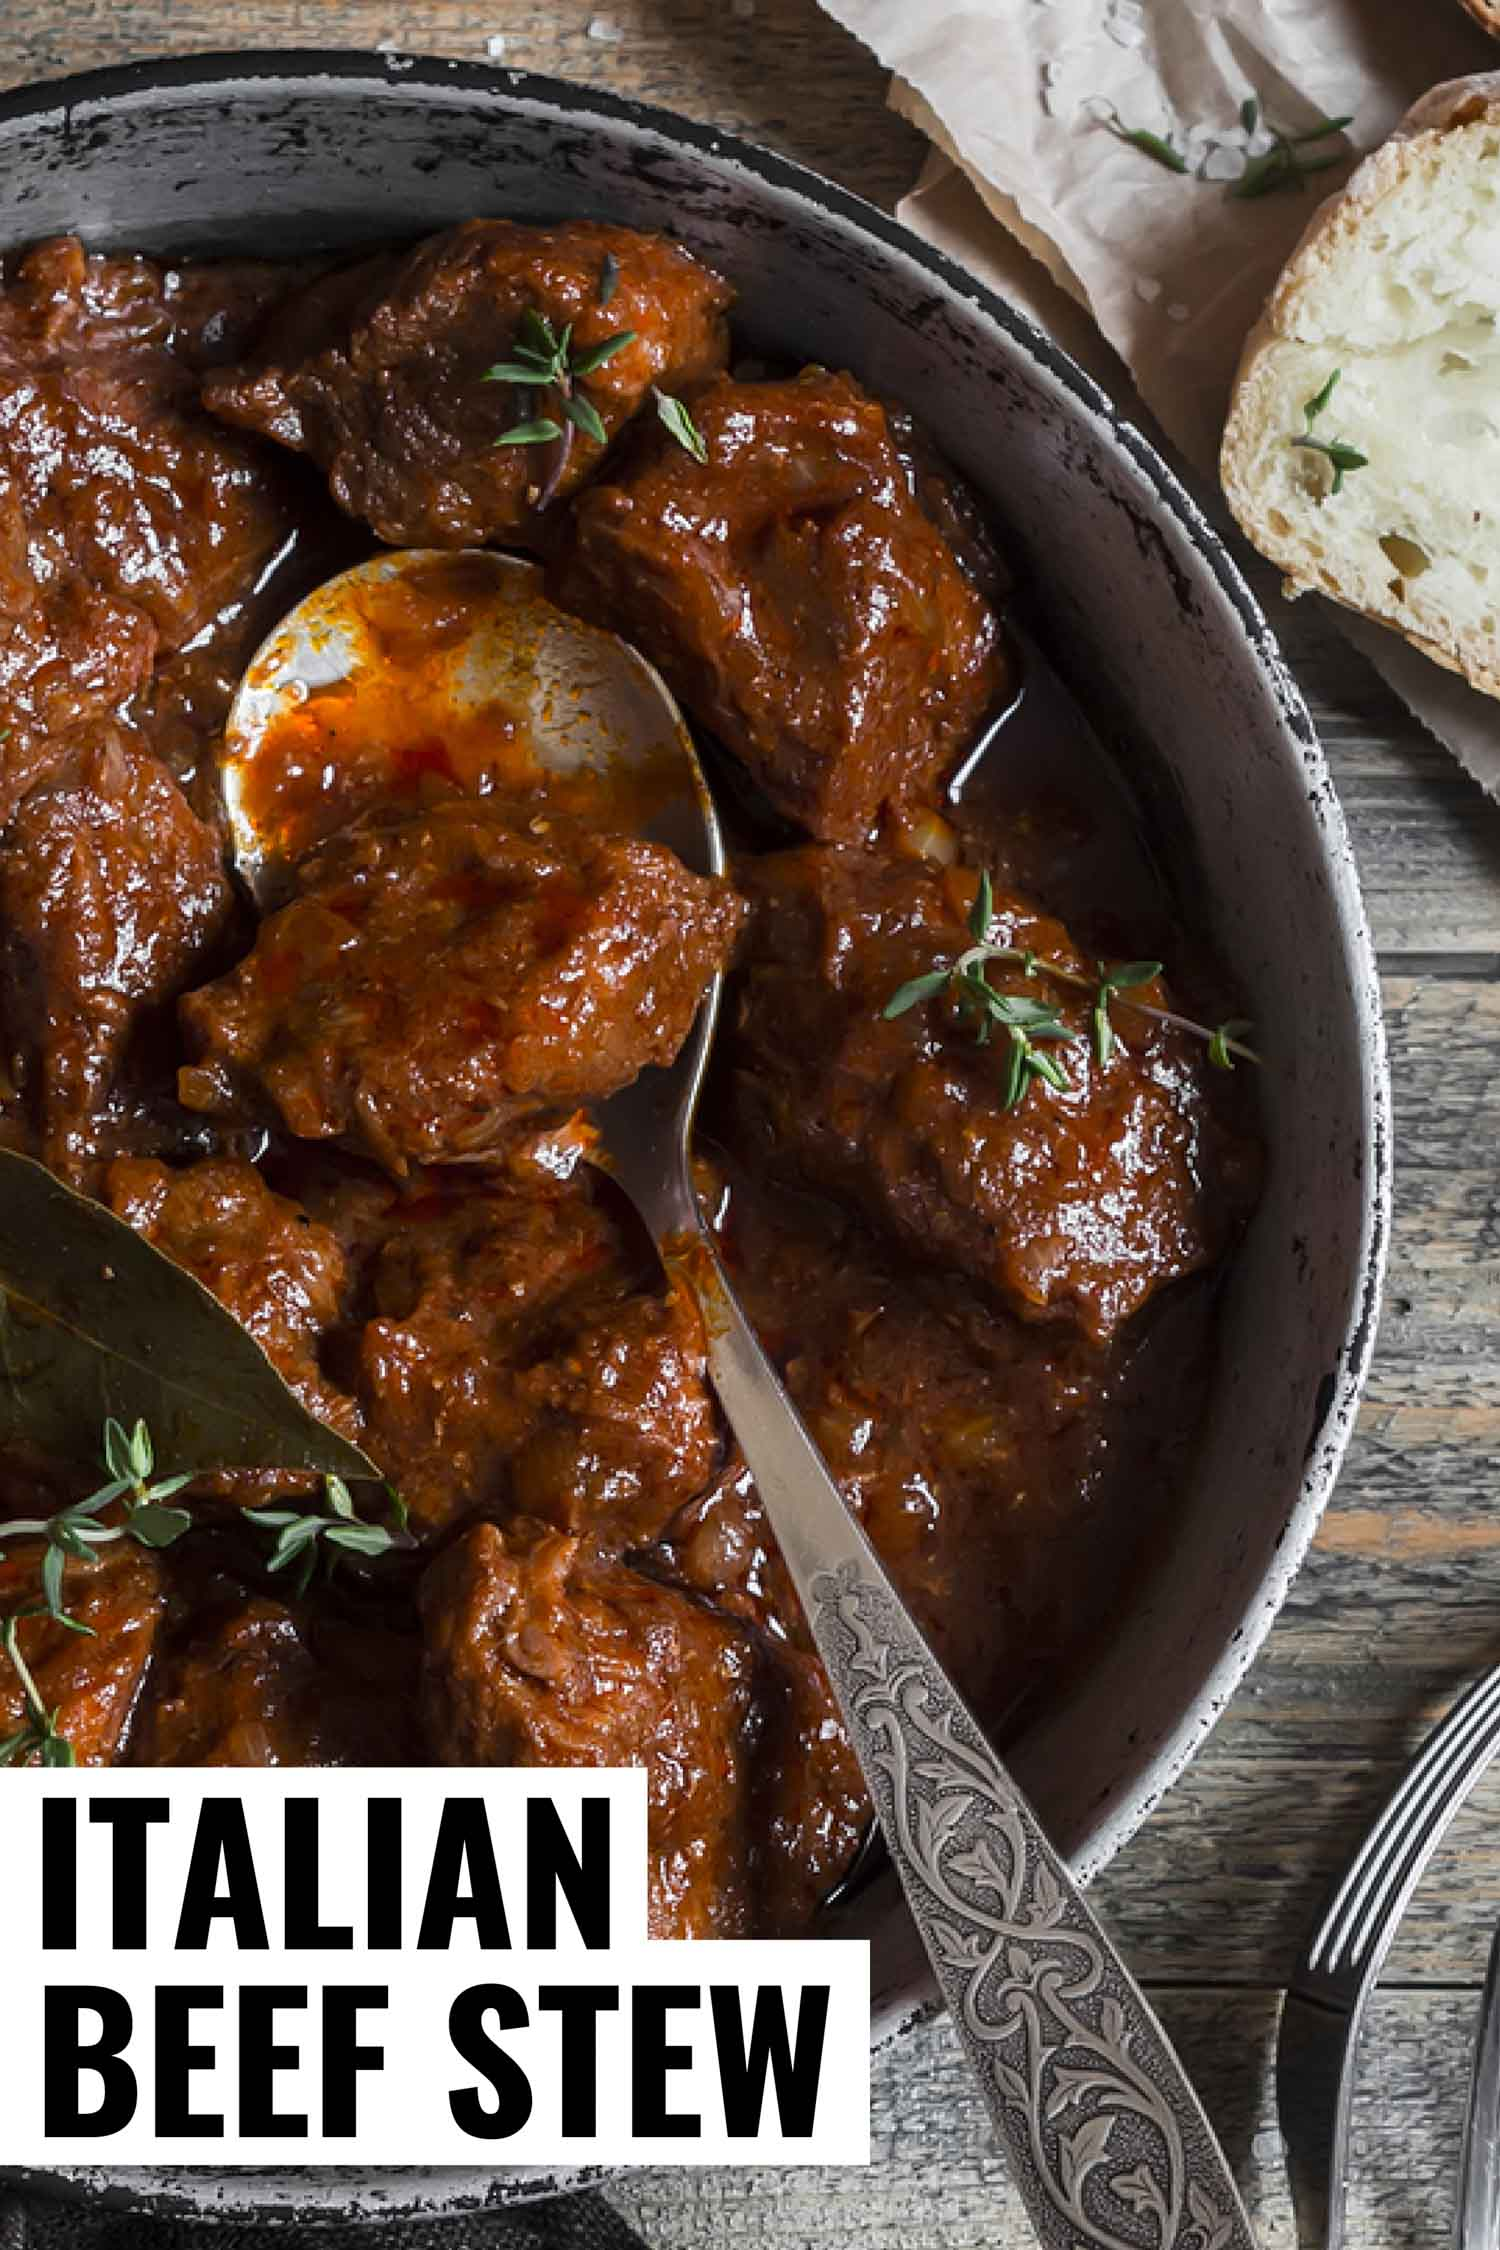 Italian beef stew braised in red wine in a grey pot on a grey rustic background